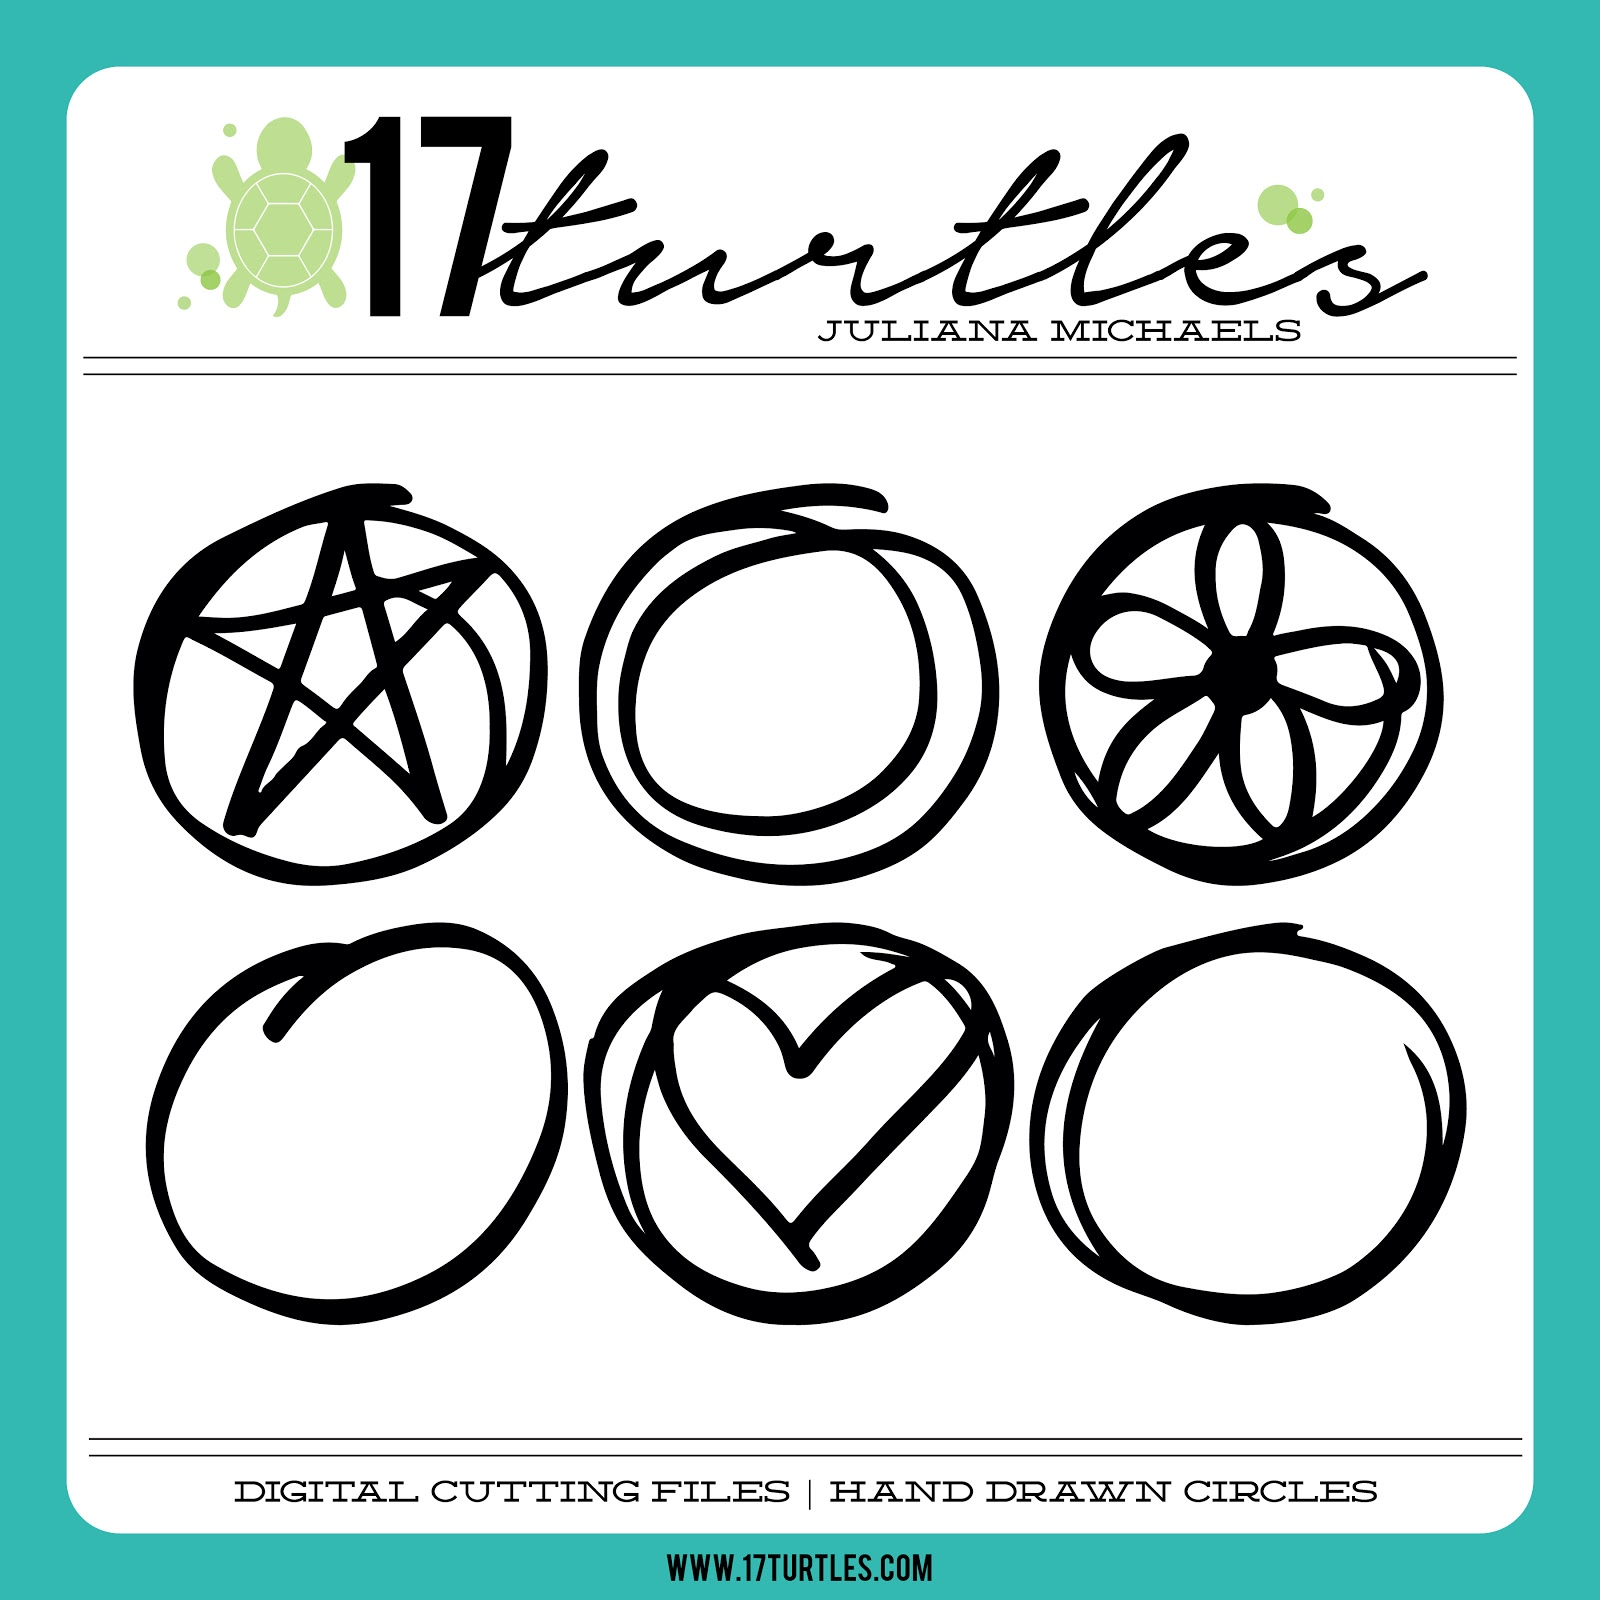 Hand Drawn Circles Free Digital Cut File by Juliana Michaels 17turtles.com